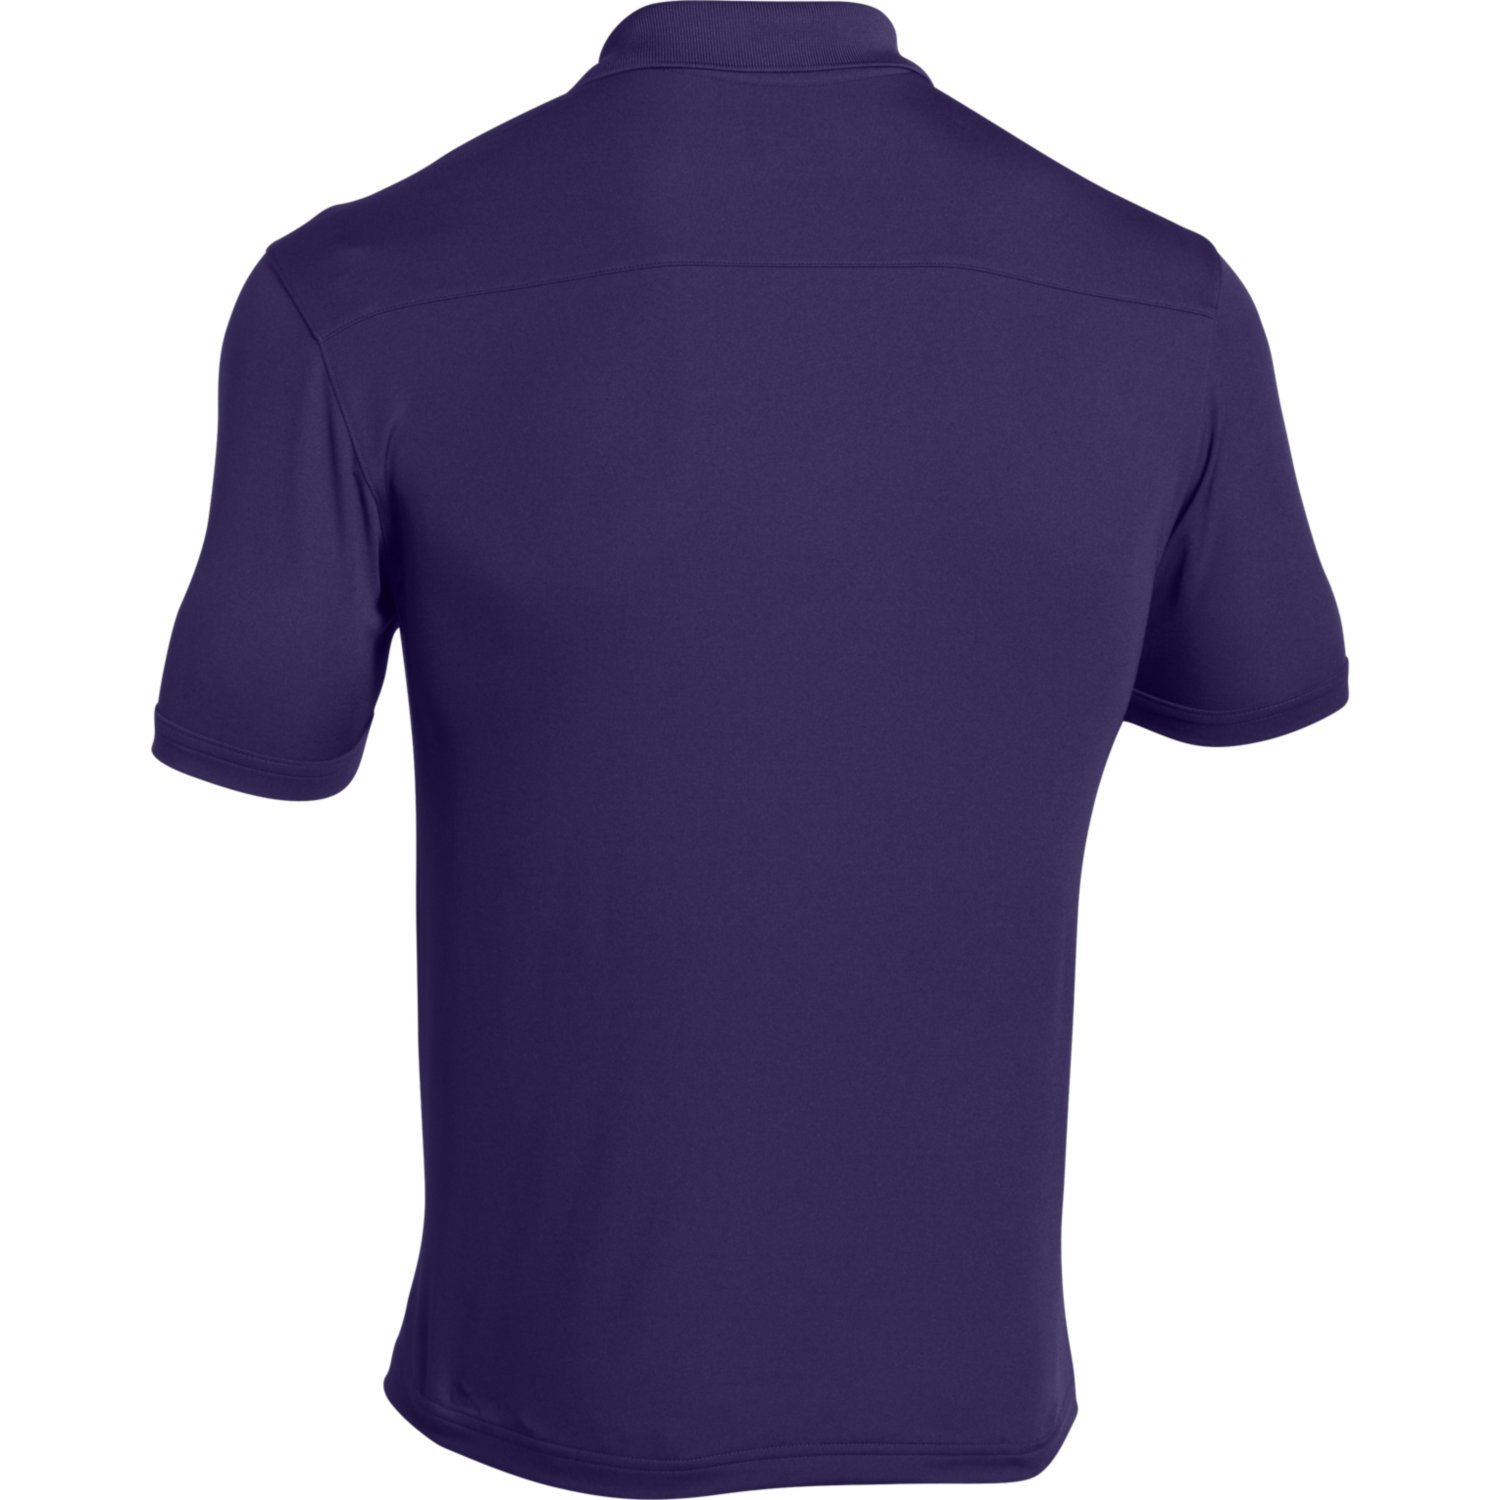 Under Armour Team Armour Men's Golf Polo (Purple, Small) by Under Armour (Image #2)